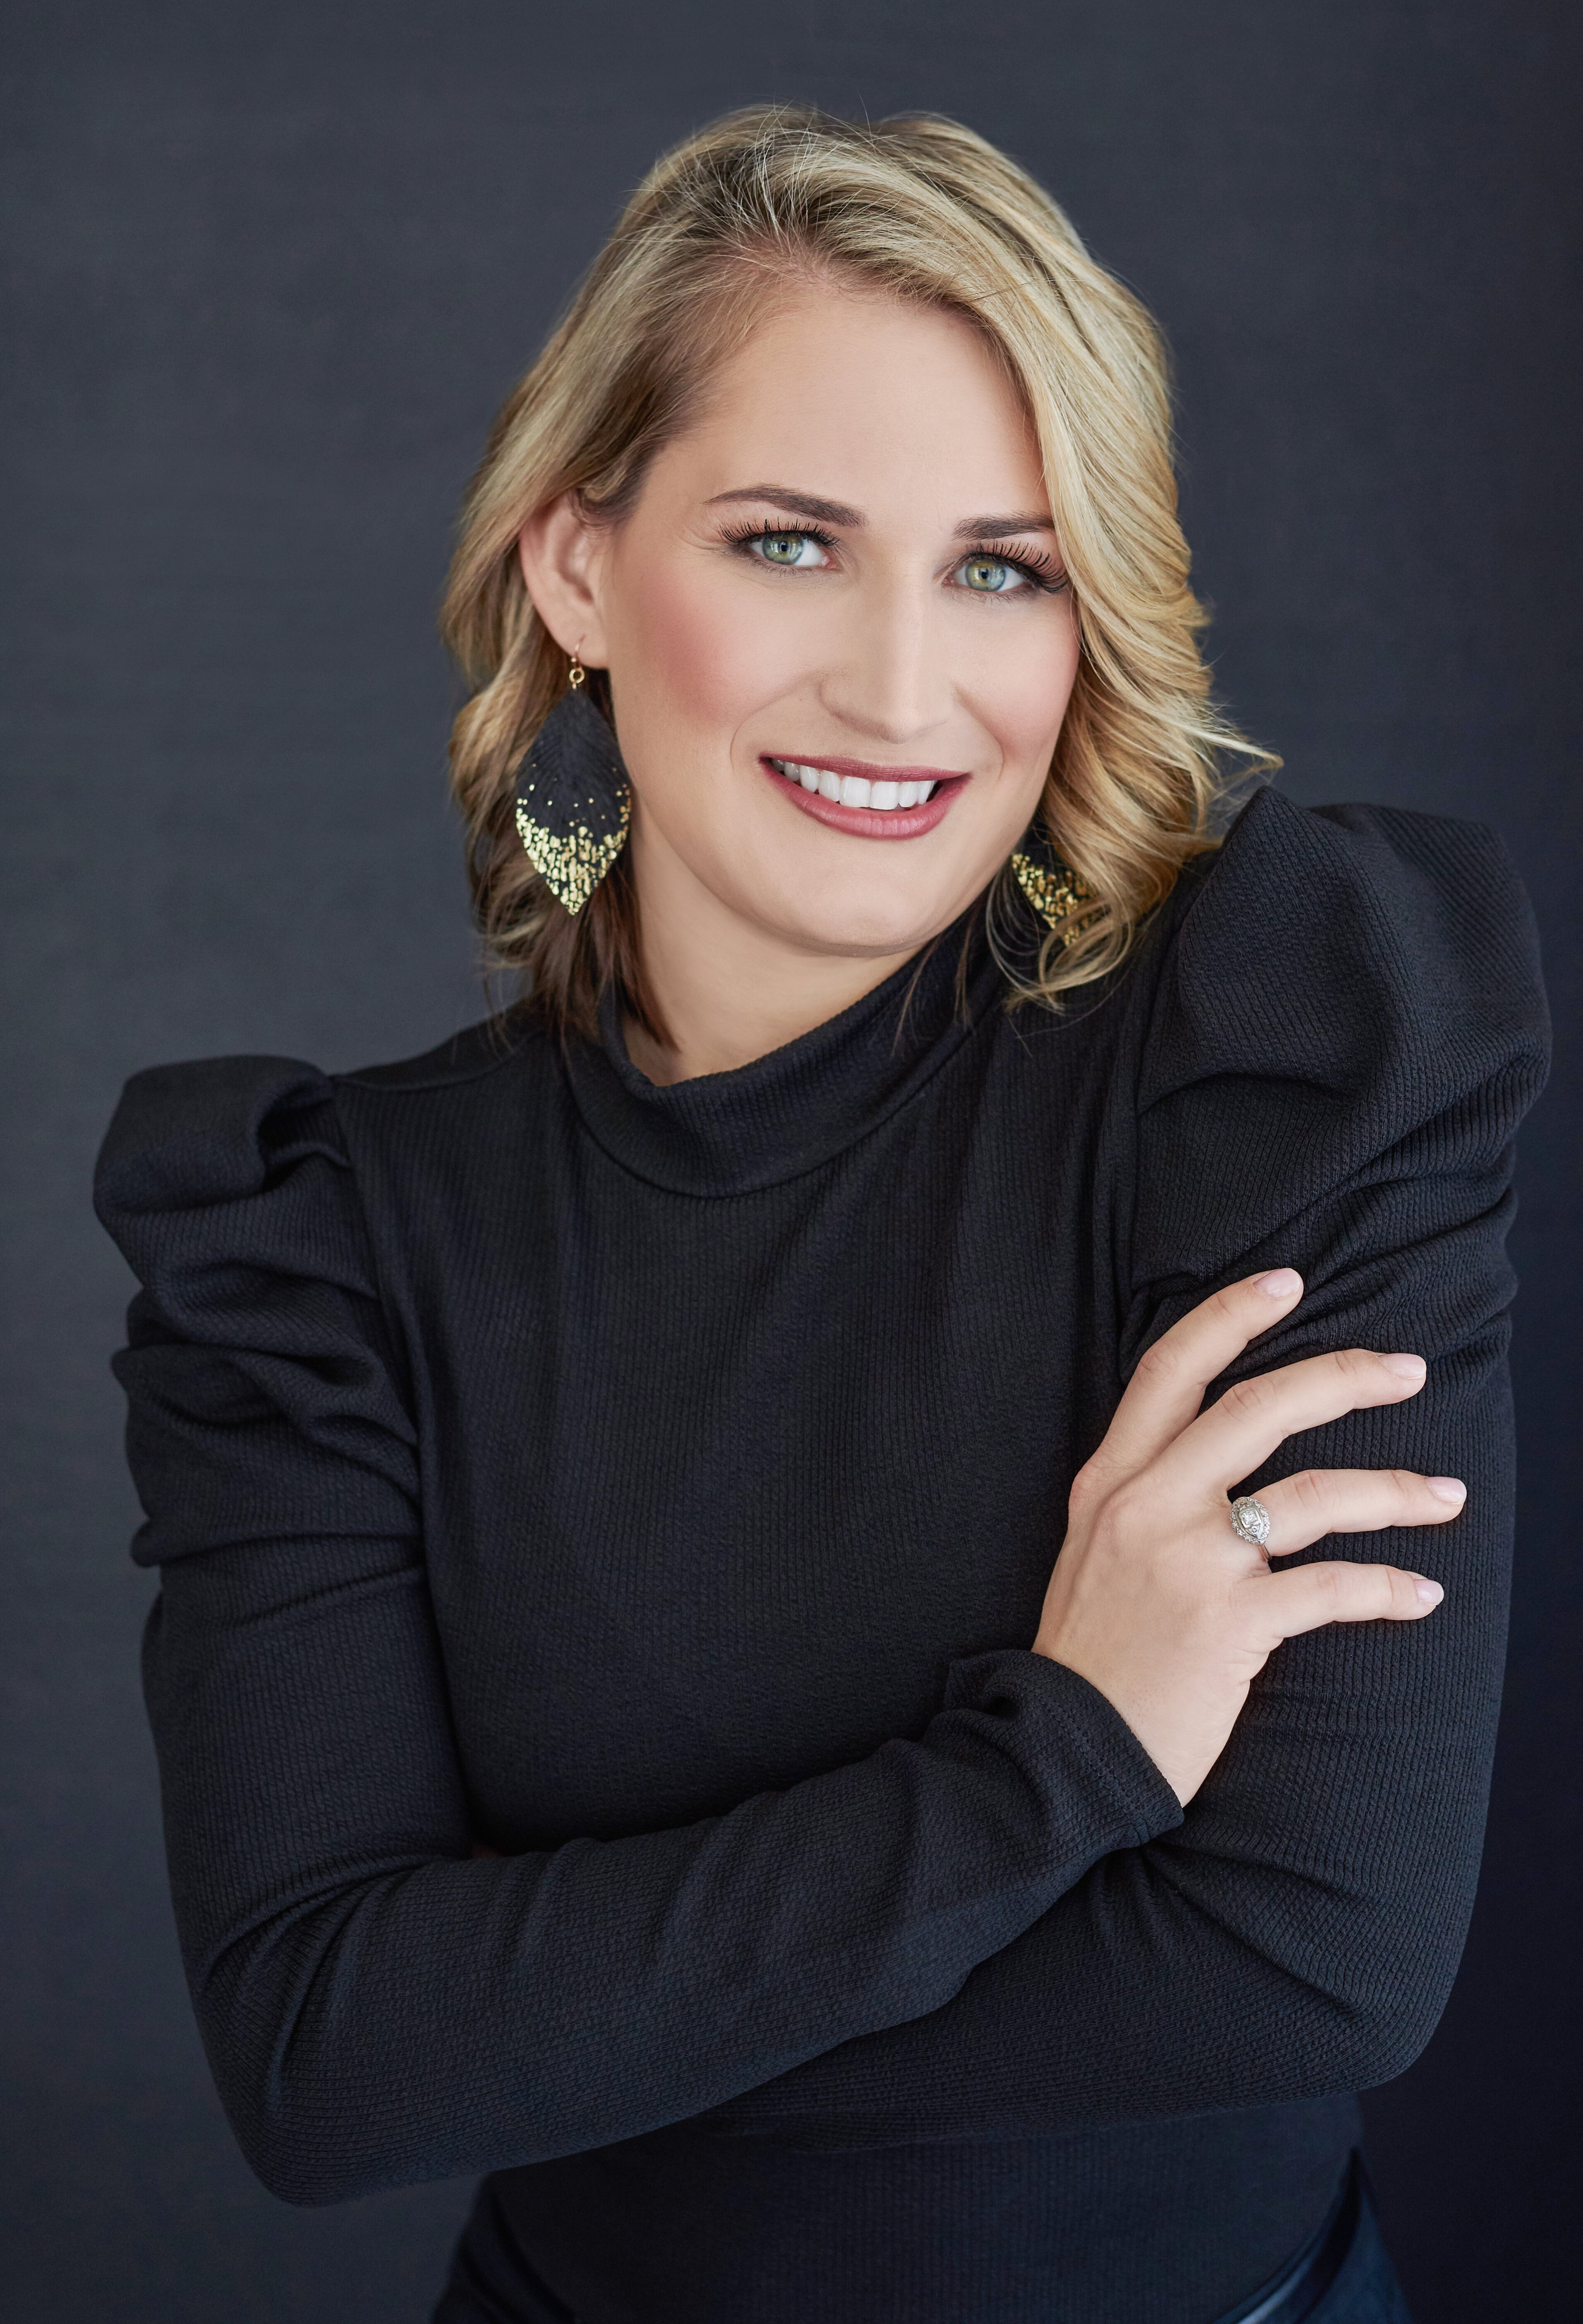 Beautiful smiling white woman with short blonde hair wearing a black dress. Professional headshot and glamour shot.